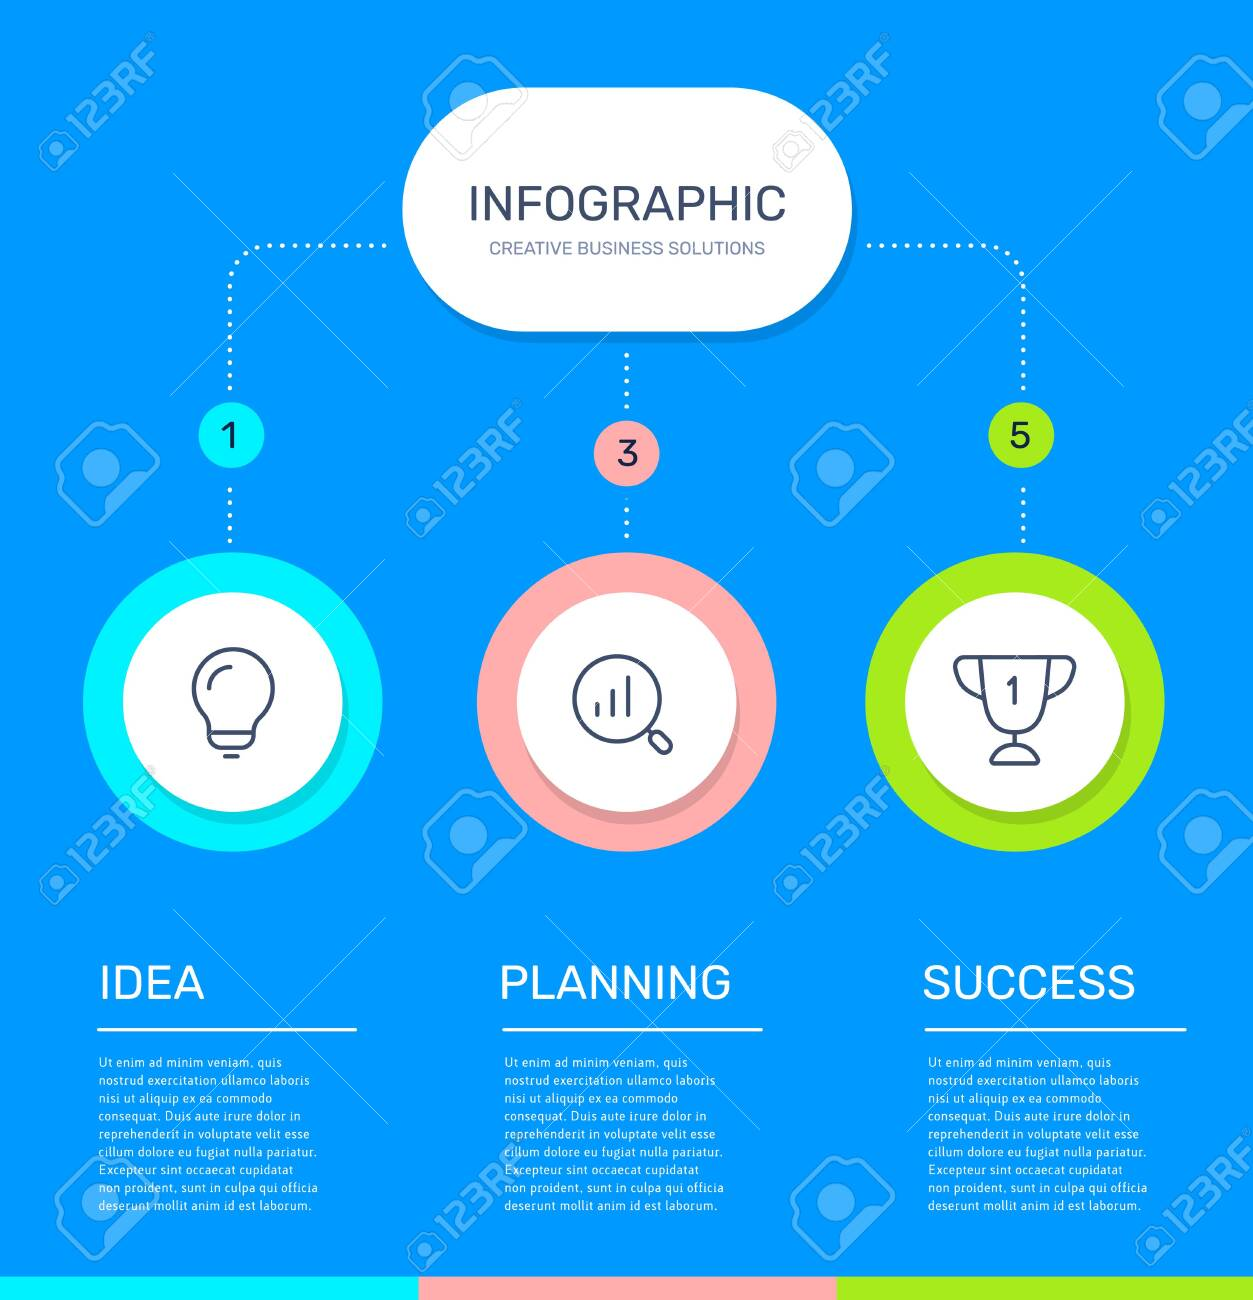 Vector infographic template with 3 circle, business icons, steps and options on blue color background. Line art style design with text and words for web, site, banner, presentation, report - 124045154